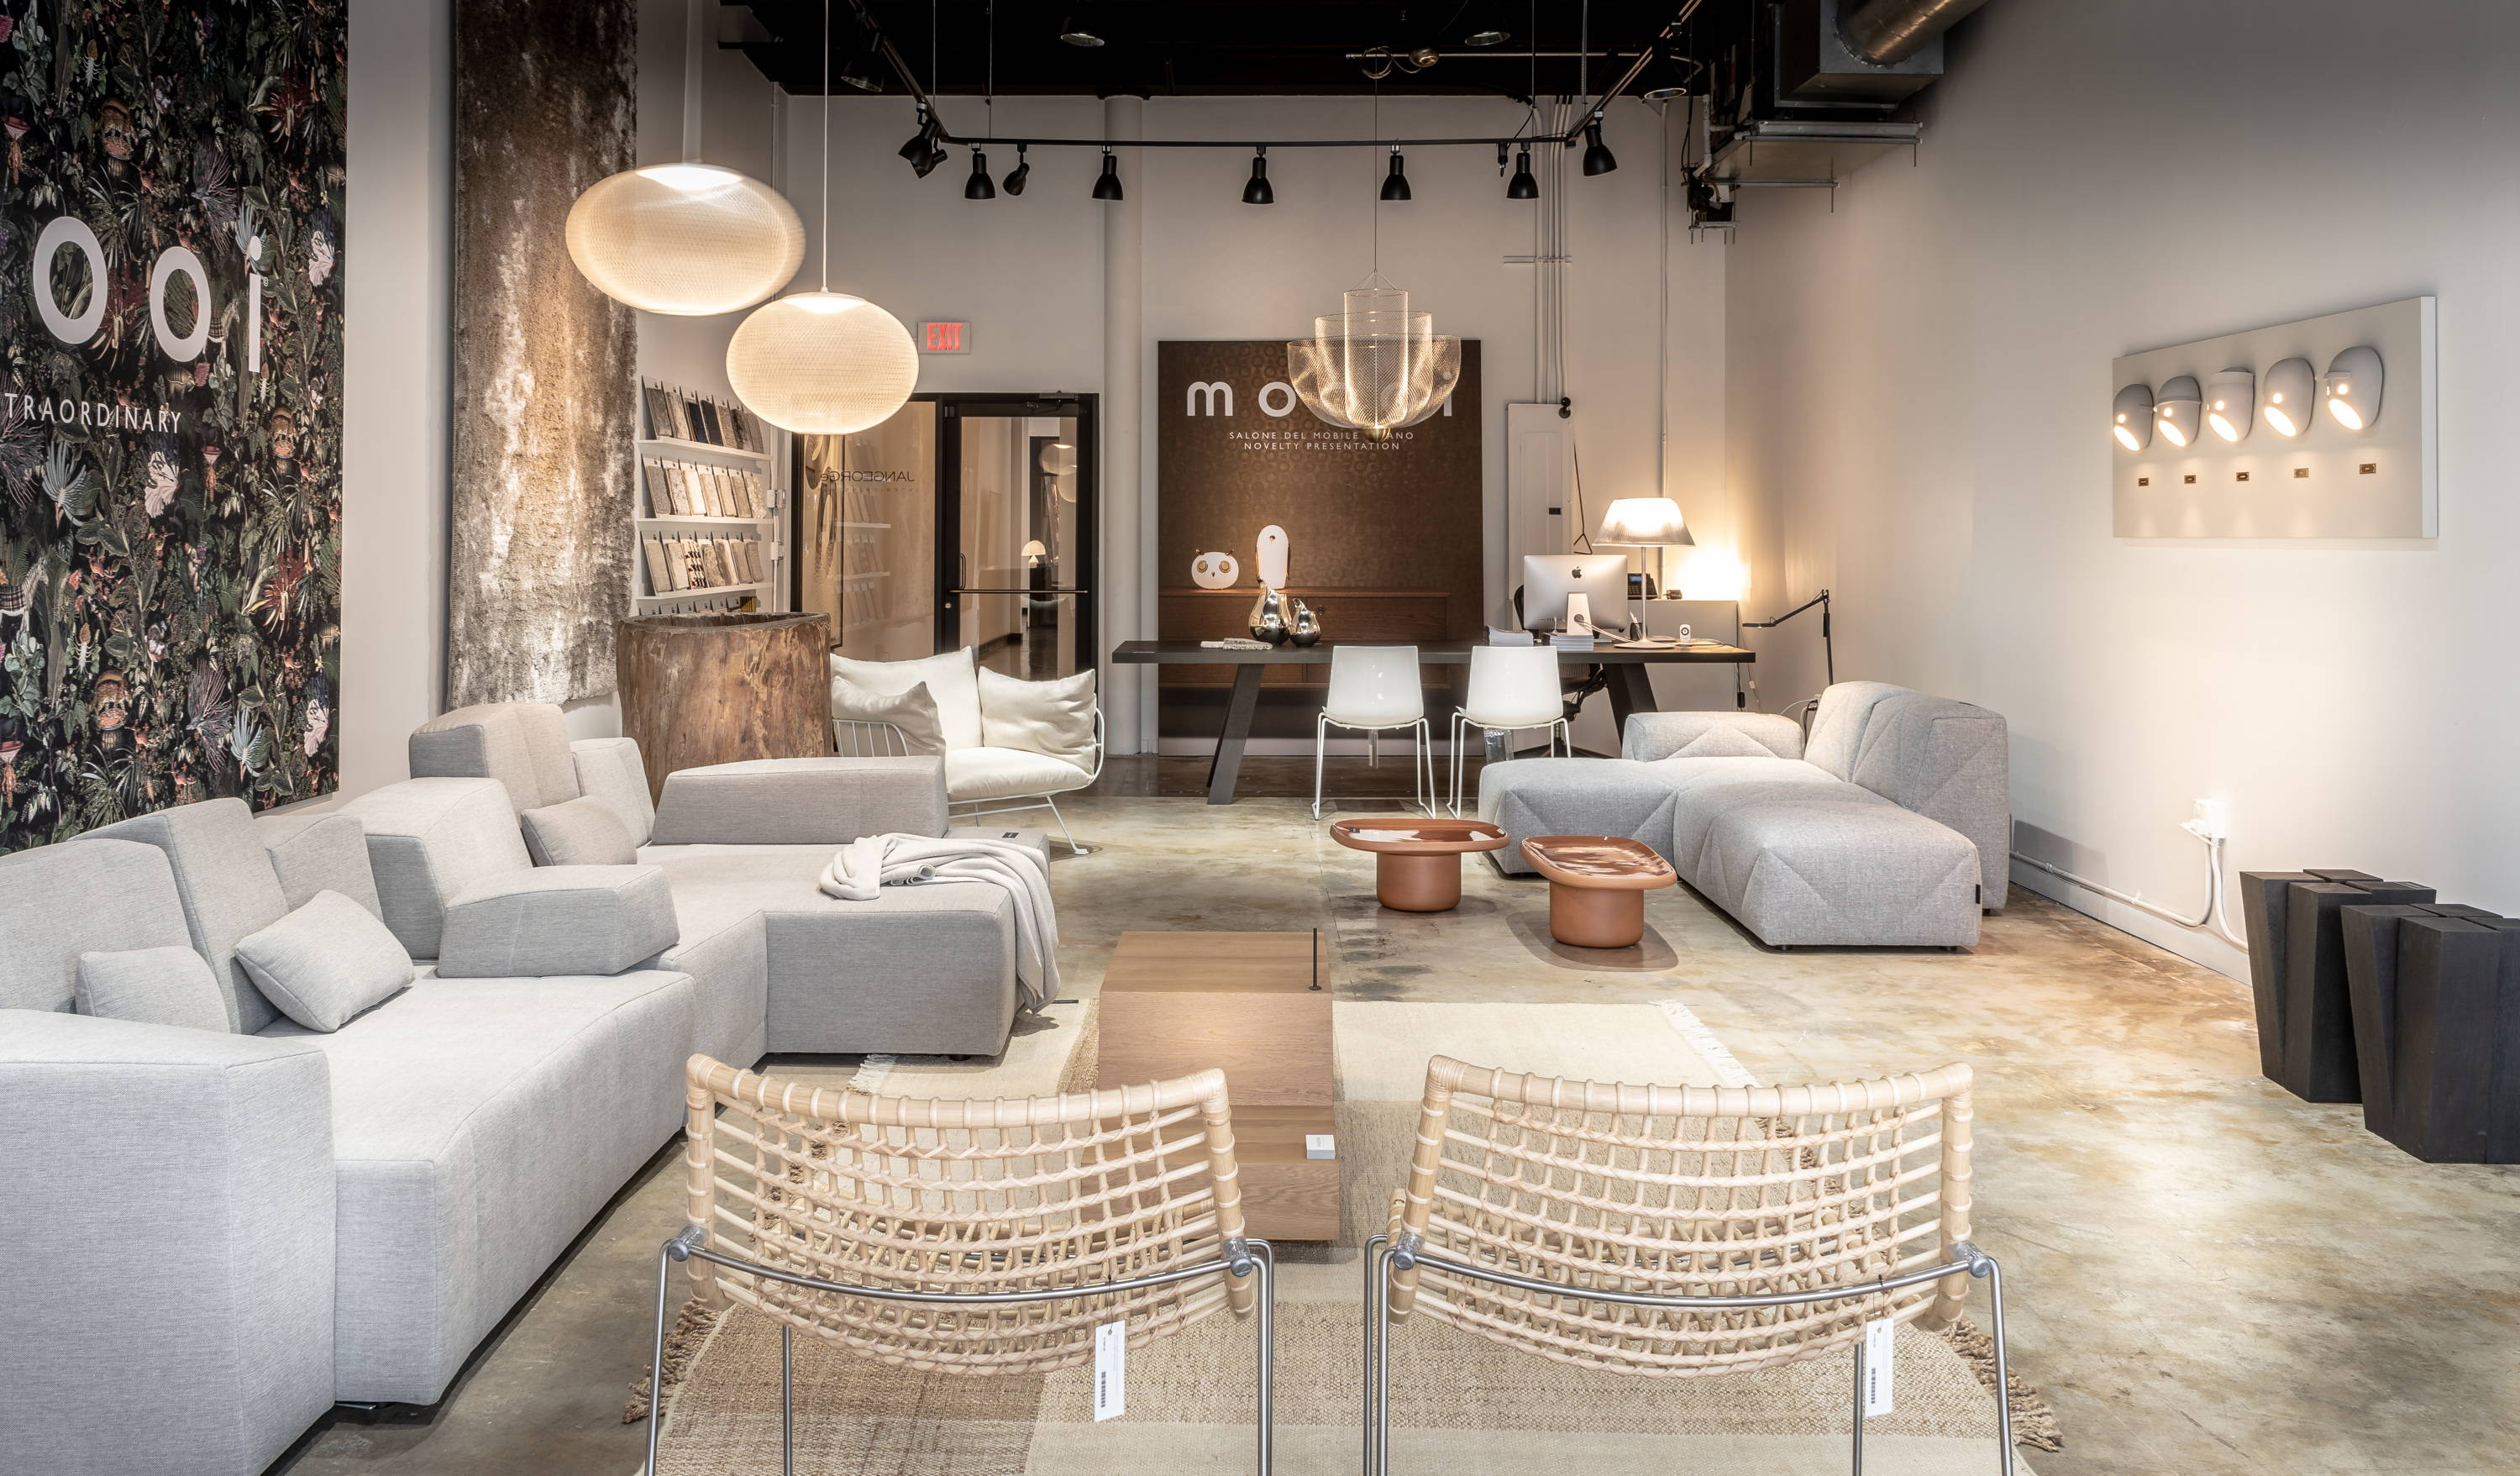 JANGEORGe Interior Design Miami Showroom, 2750 NW 3rd Avenue, Miami, FL 33127, in The Wynwood Buidling